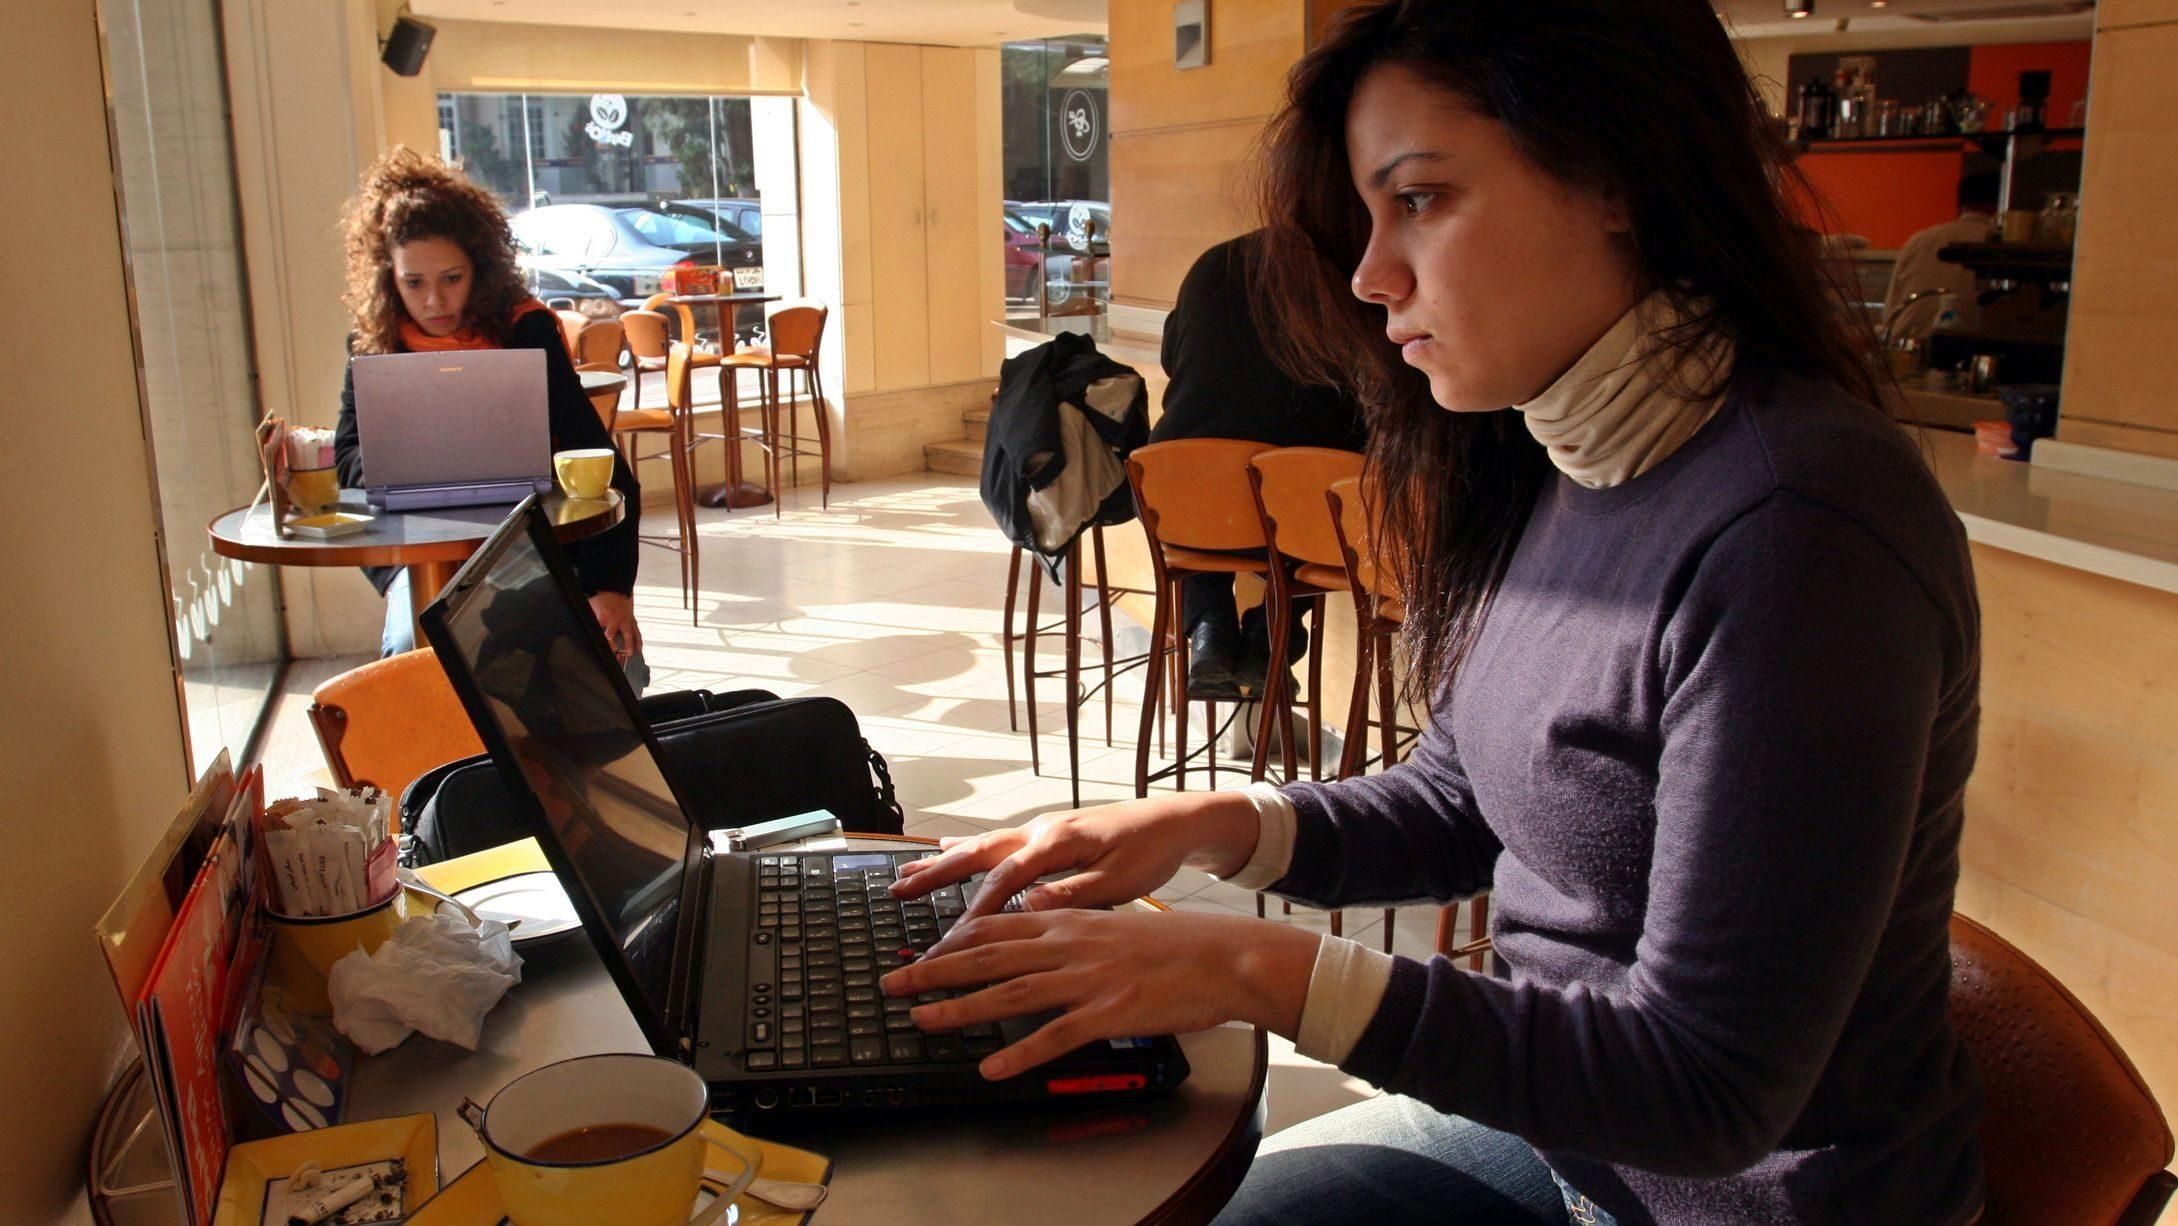 Digital nomads often resort to working illegally in the